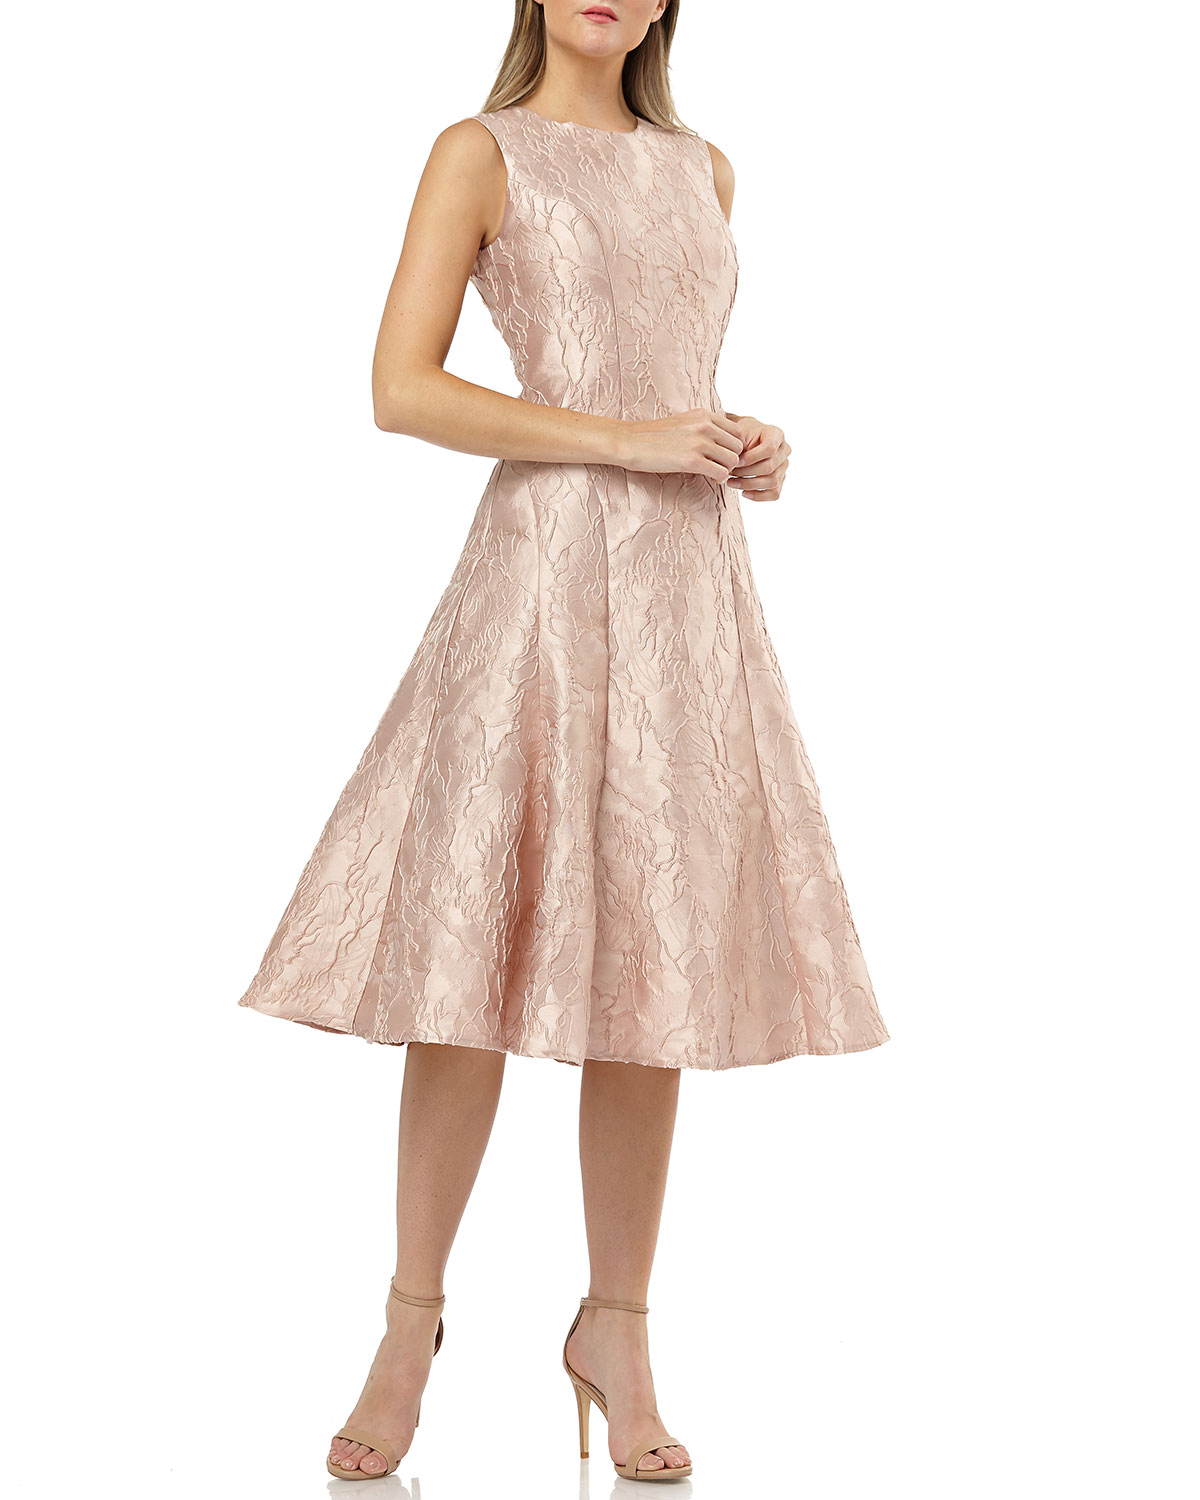 Carmen Marc Valvo Infusion Rose Pink Sleeveless Fit-&-Flare Brocade Cocktail Dress